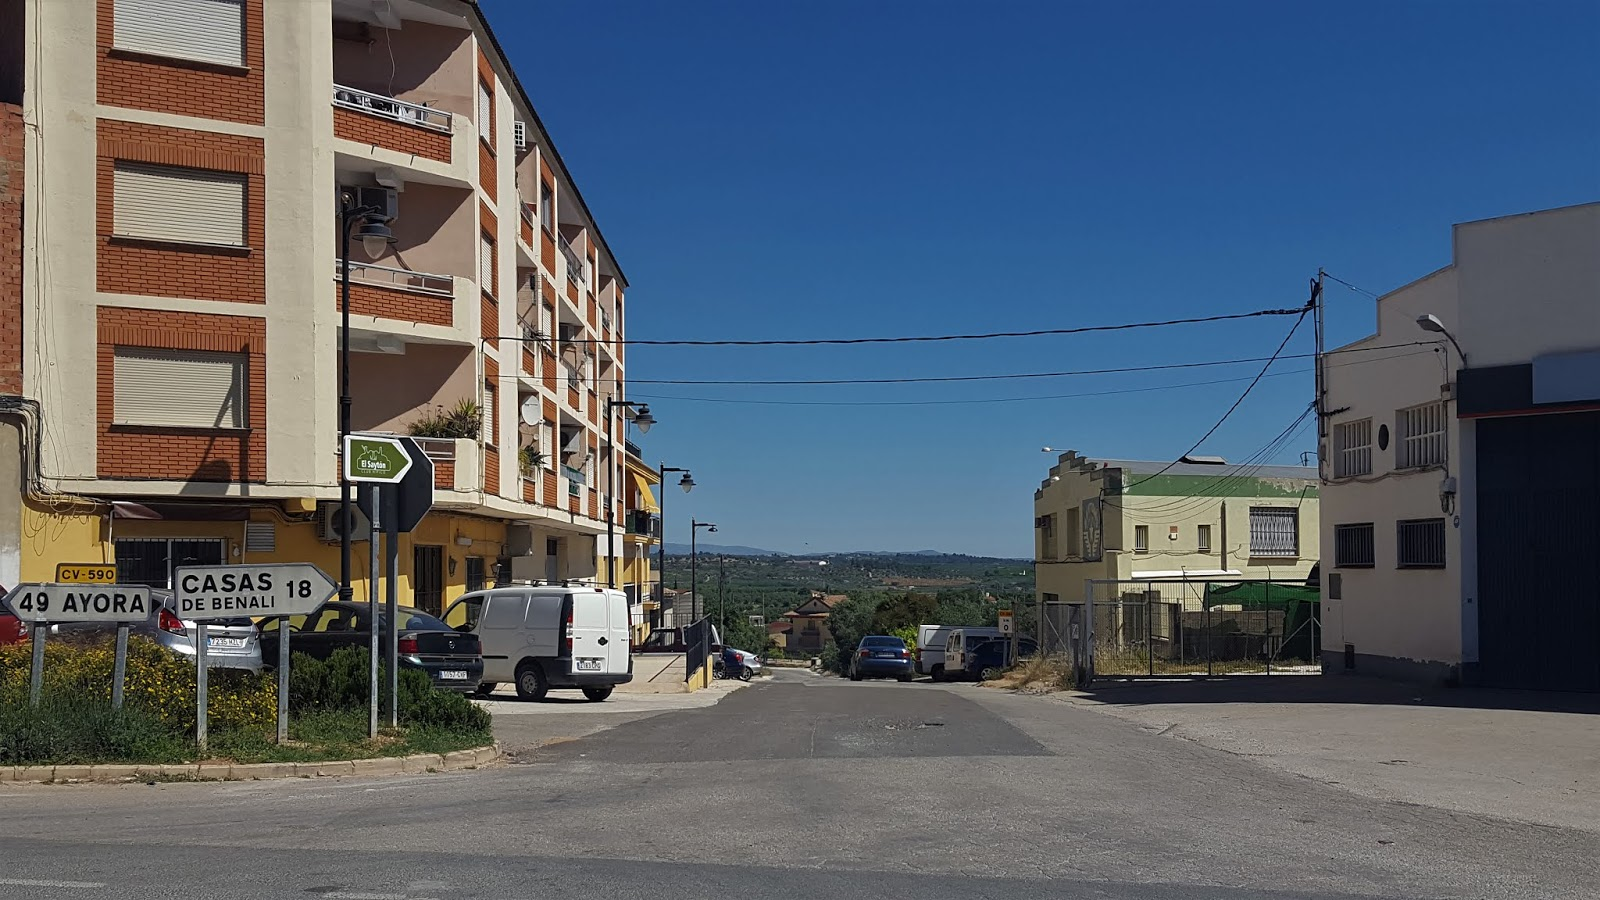 Start of CV-584 road in Enguera, Valencian Community, Spain